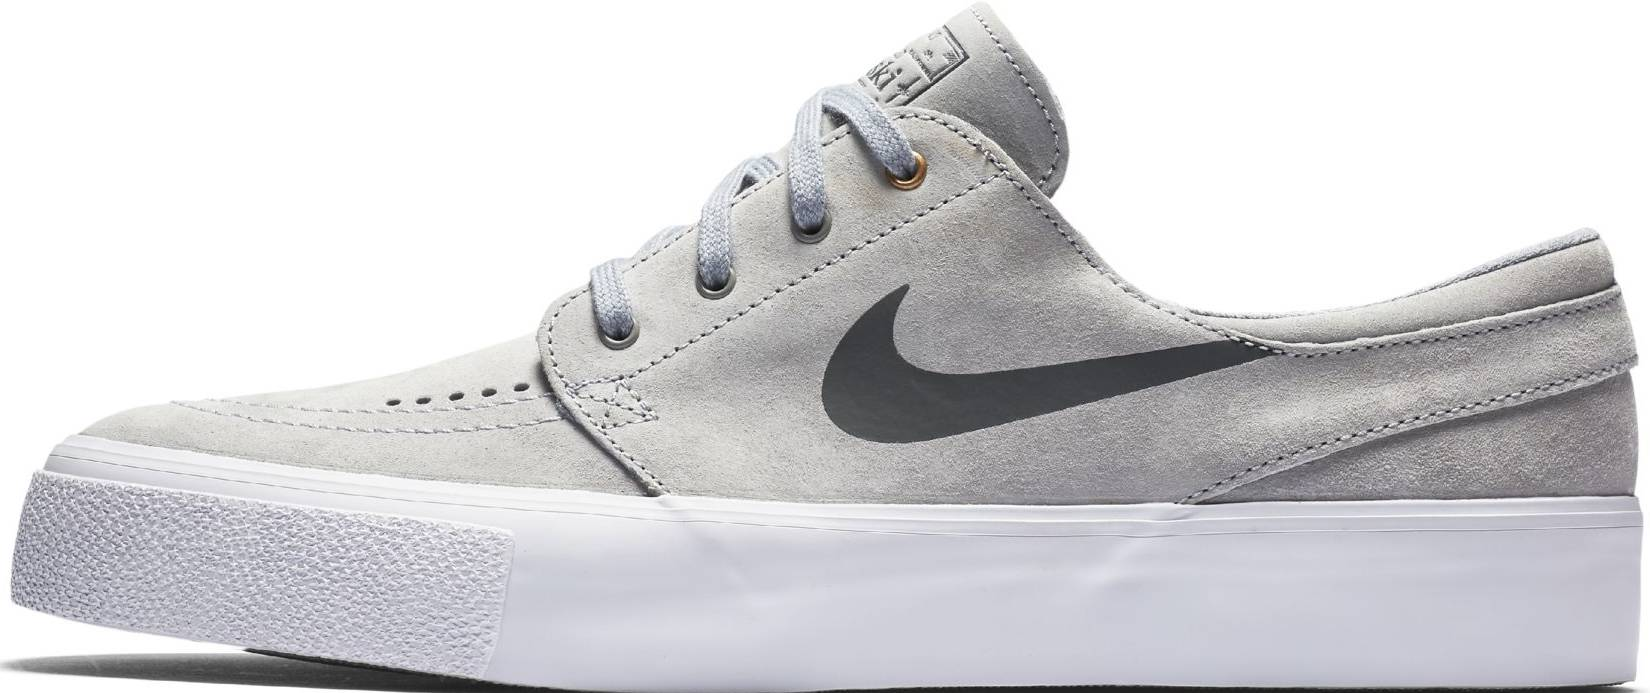 Cartas credenciales filósofo Superficial  13 Reasons to/NOT to Buy Nike SB Zoom Stefan Janoski Premium High Tape (Nov  2020) | RunRepeat